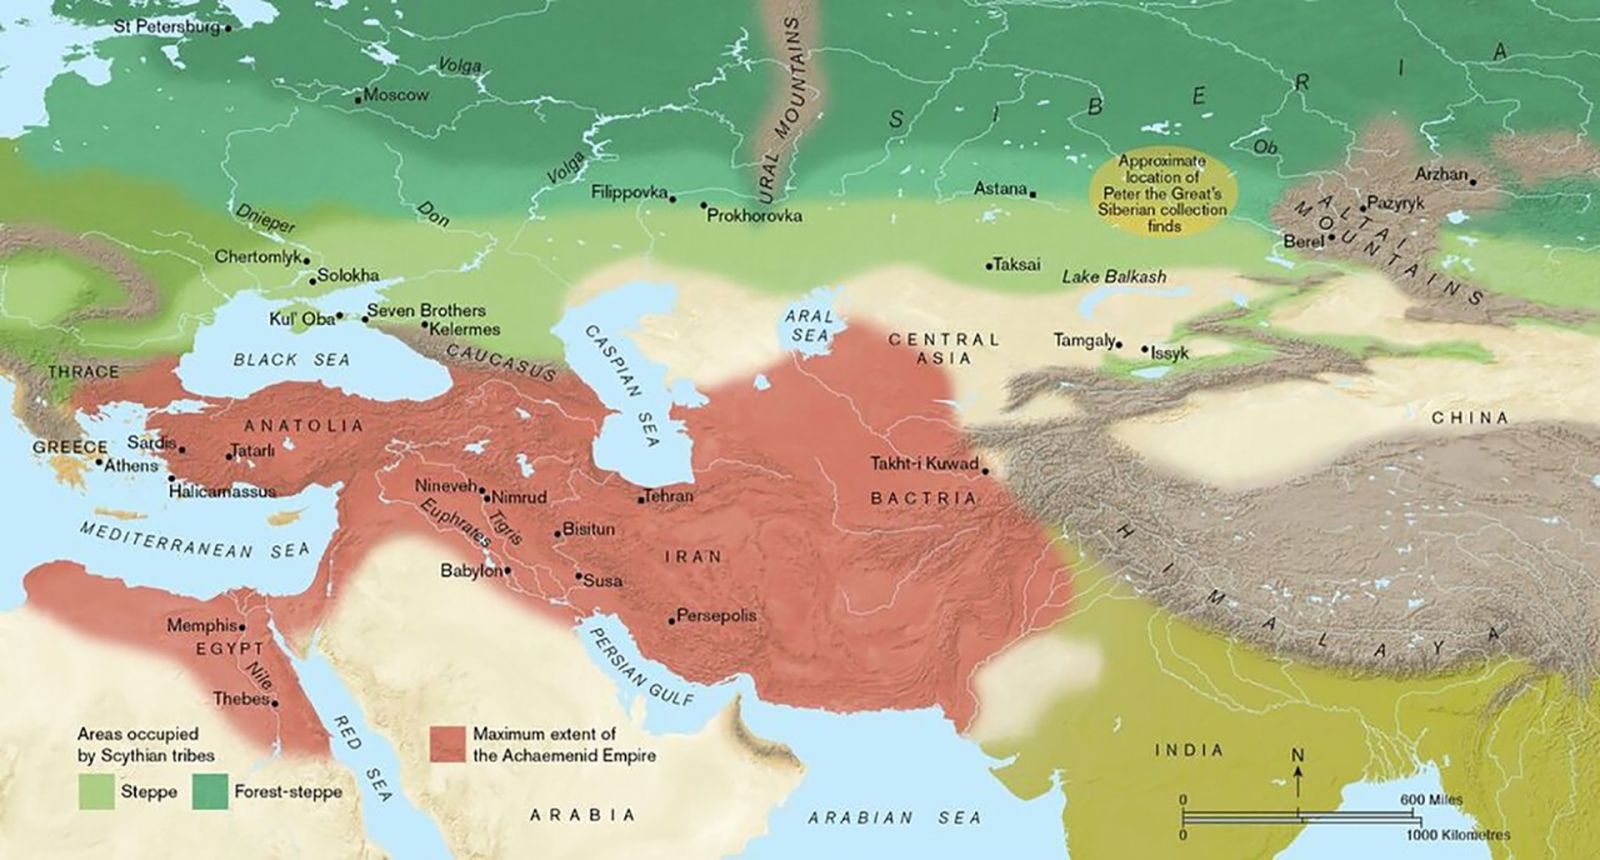 Fig. 1. Map of Eurasia, showing the extent of the Achaemenid empire (in red) and the Eurasian steppe and mixed woodland largely occupied by the Scythians (in green) (P. Goodhead).